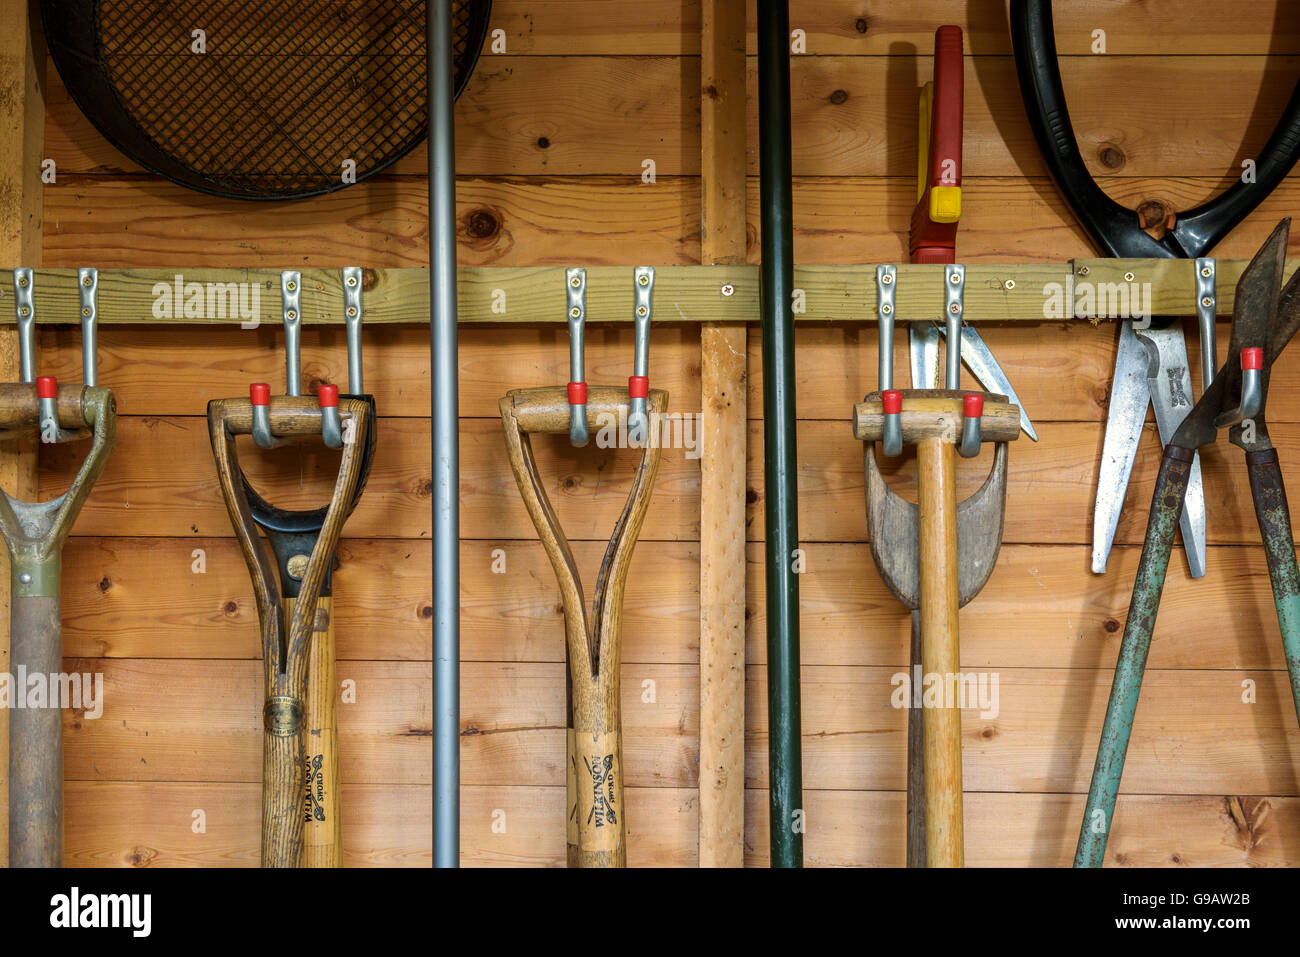 Bon Garden Tools Hanging In A Wooden Shed.   Stock Image